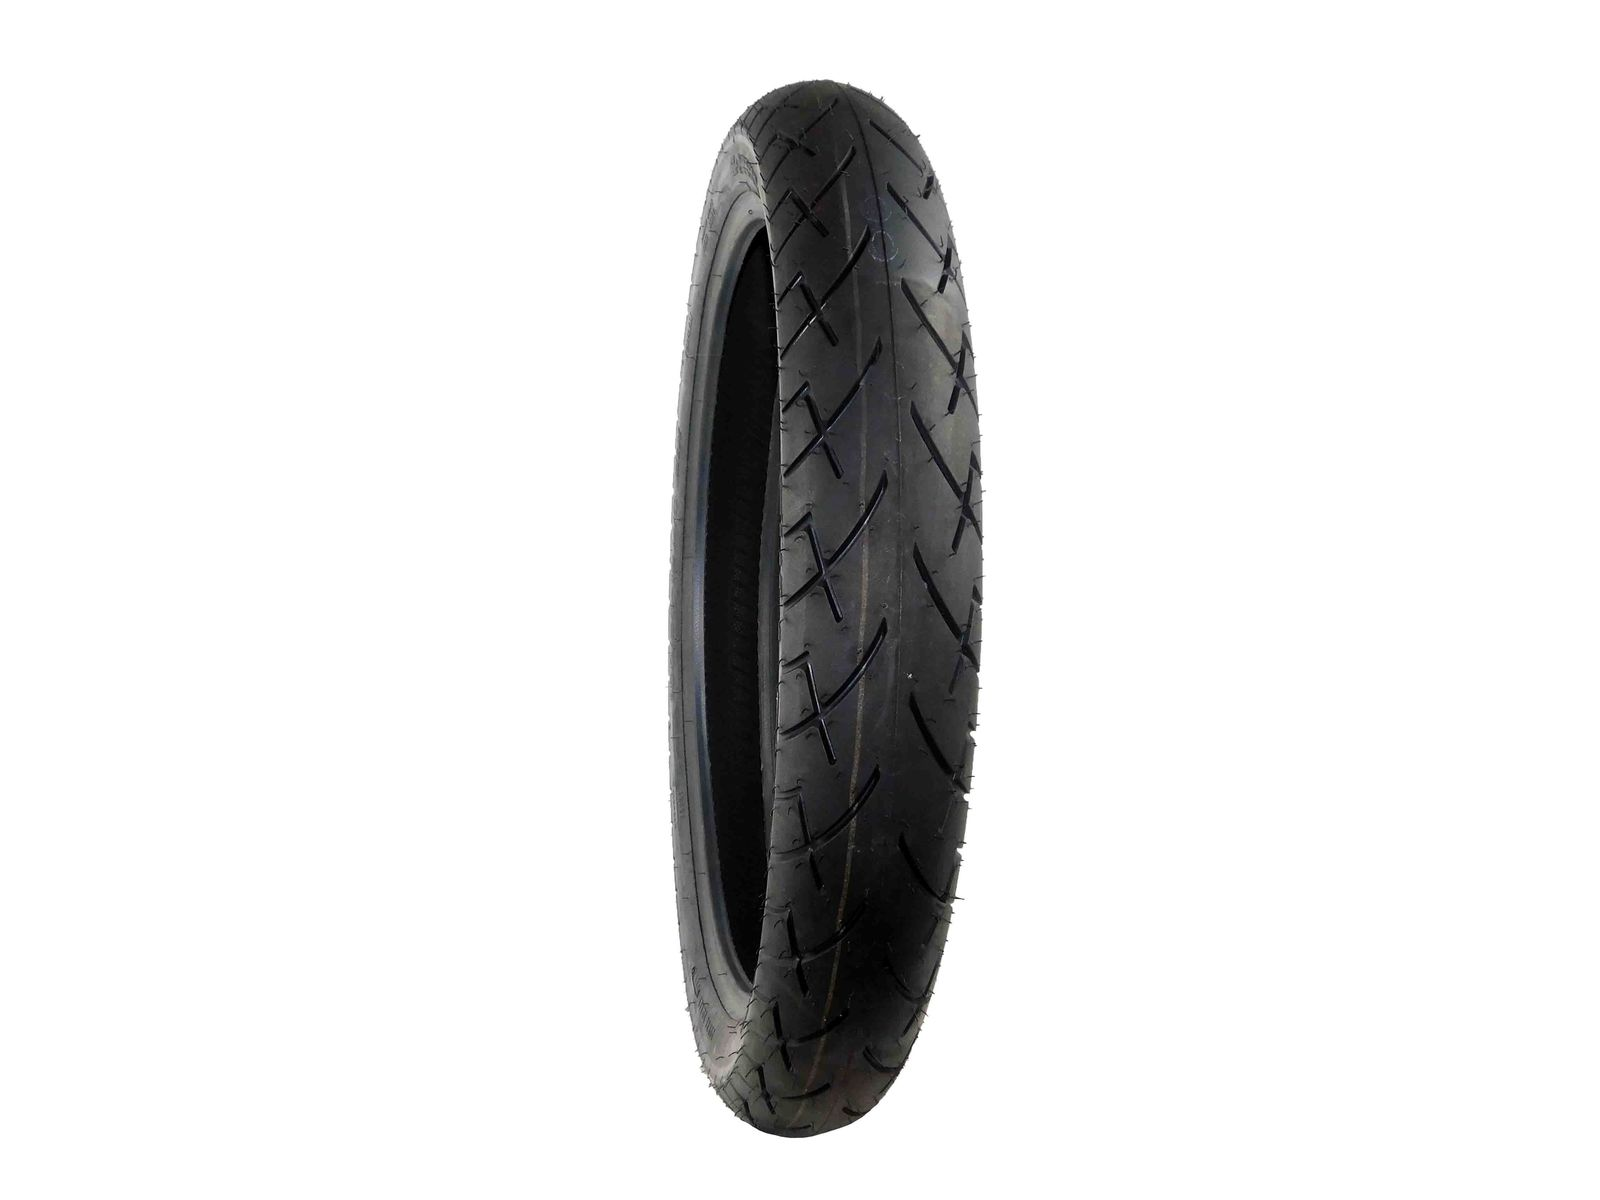 Full-Bore-100-90-19-Front-140-90-16-Rear-Set-Cruiser-Motorcycle-Tires-image-2